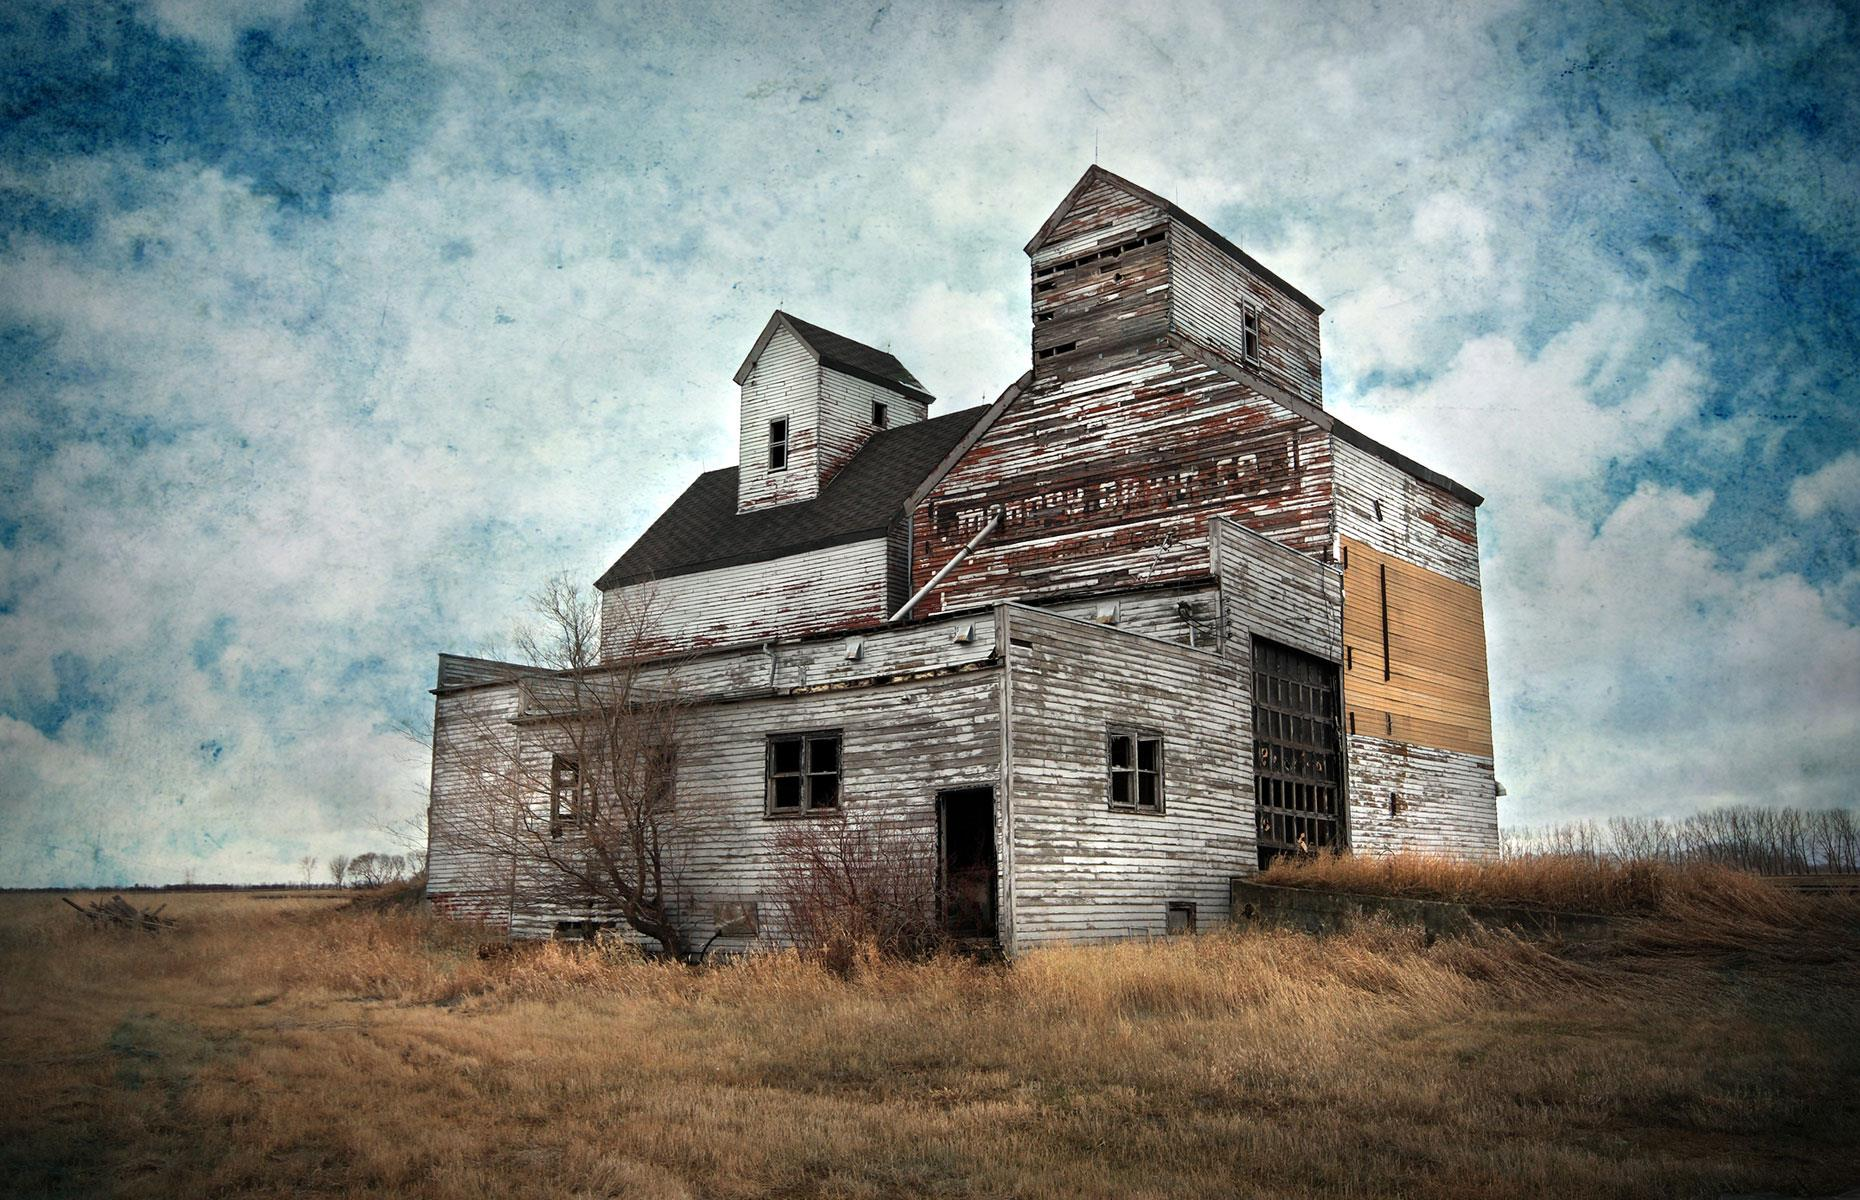 Slide 68 of 101: Located in the semi-abandoned town of Ardoch, the Mondry Grain Elevator was built in 1881 when the town was a thriving center of agriculture.